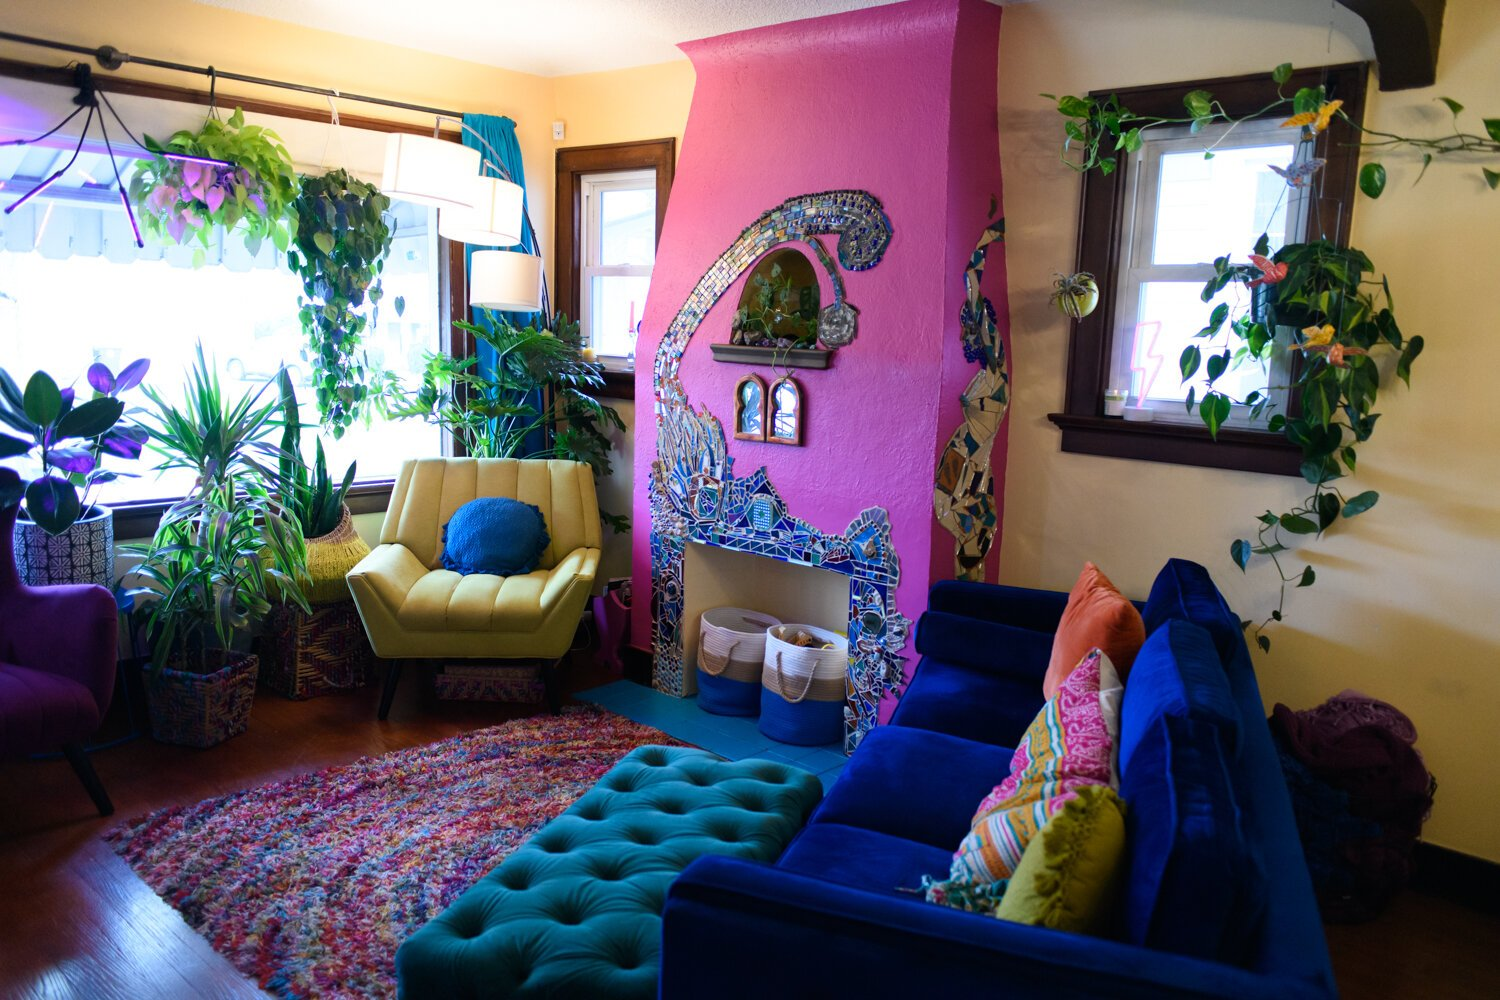 The living room features a lot of color and plants.